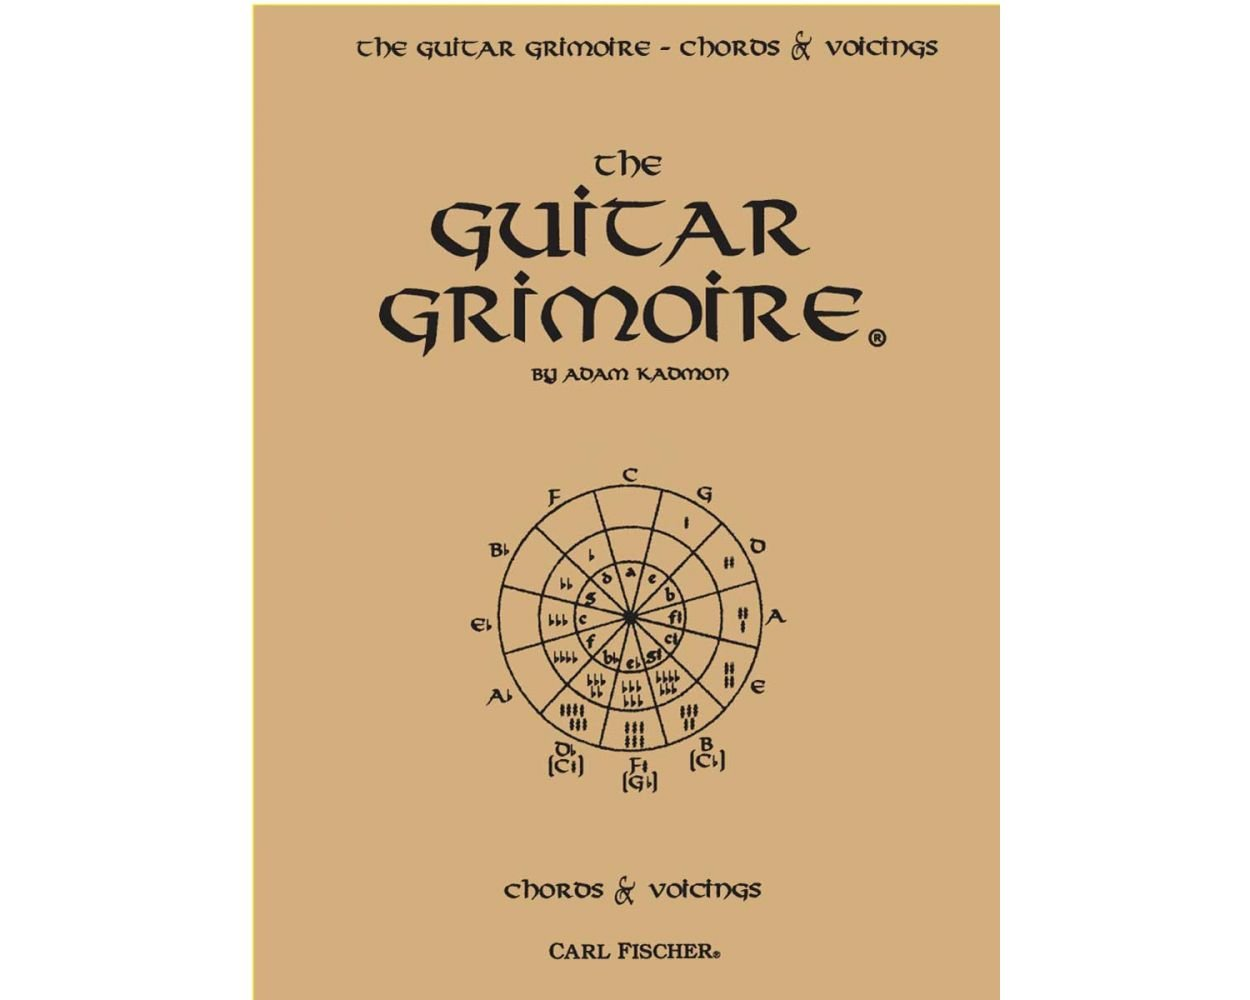 The Guitar Grimoire Chords and Voicings